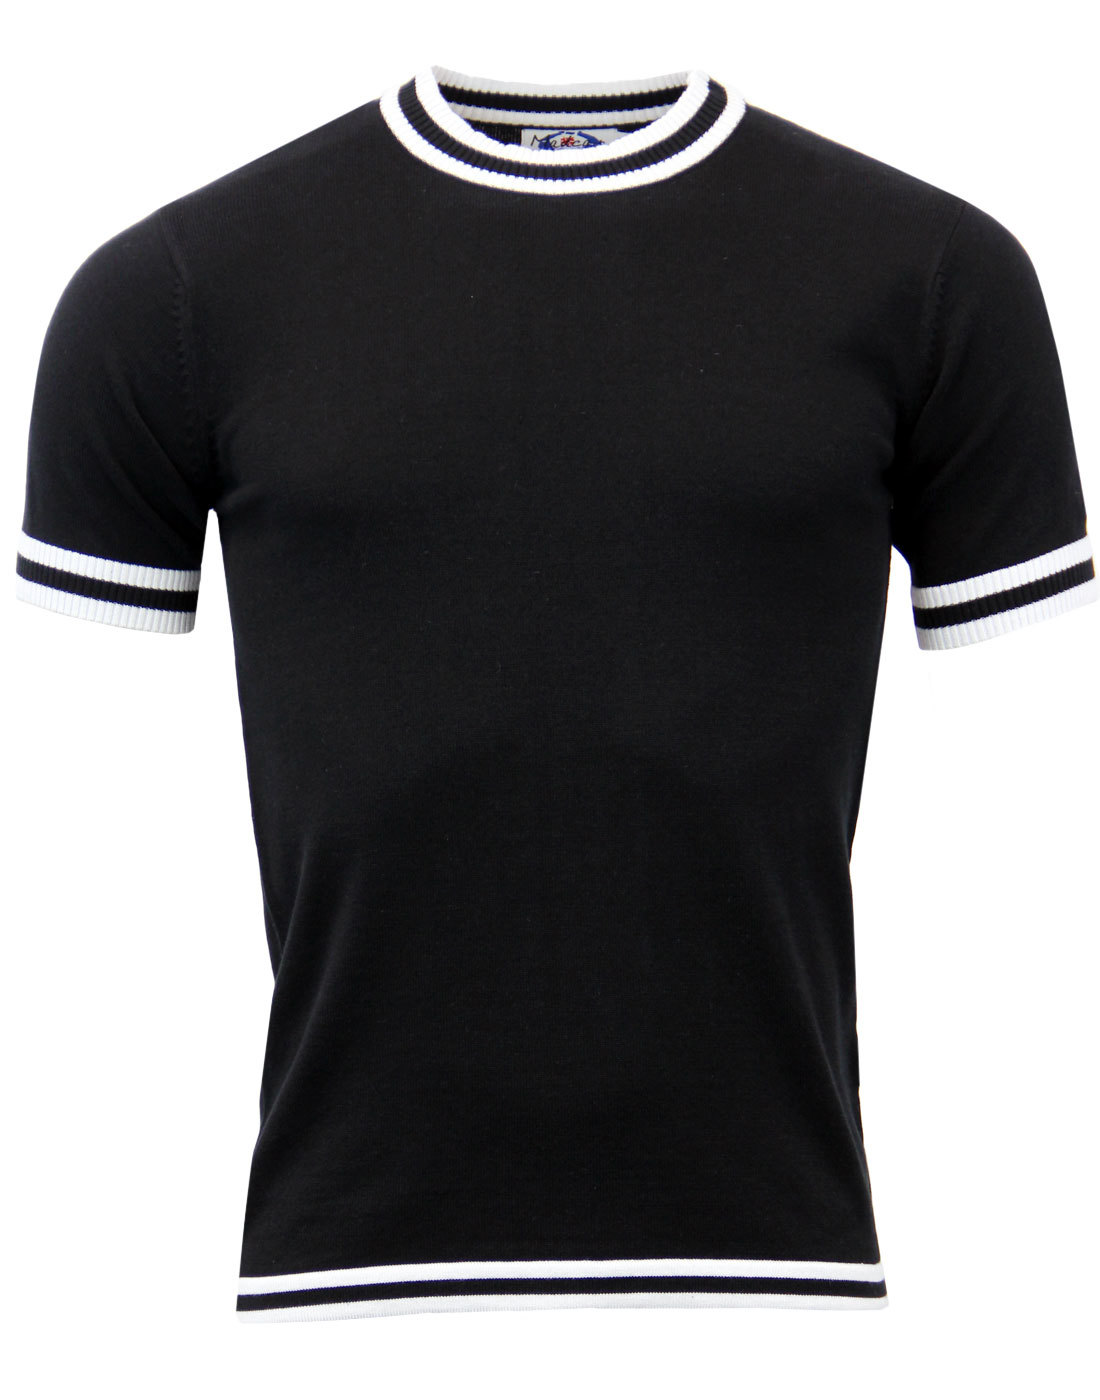 Moon MADCAP ENGLAND 60s Mod Tipped Knitted T-shirt